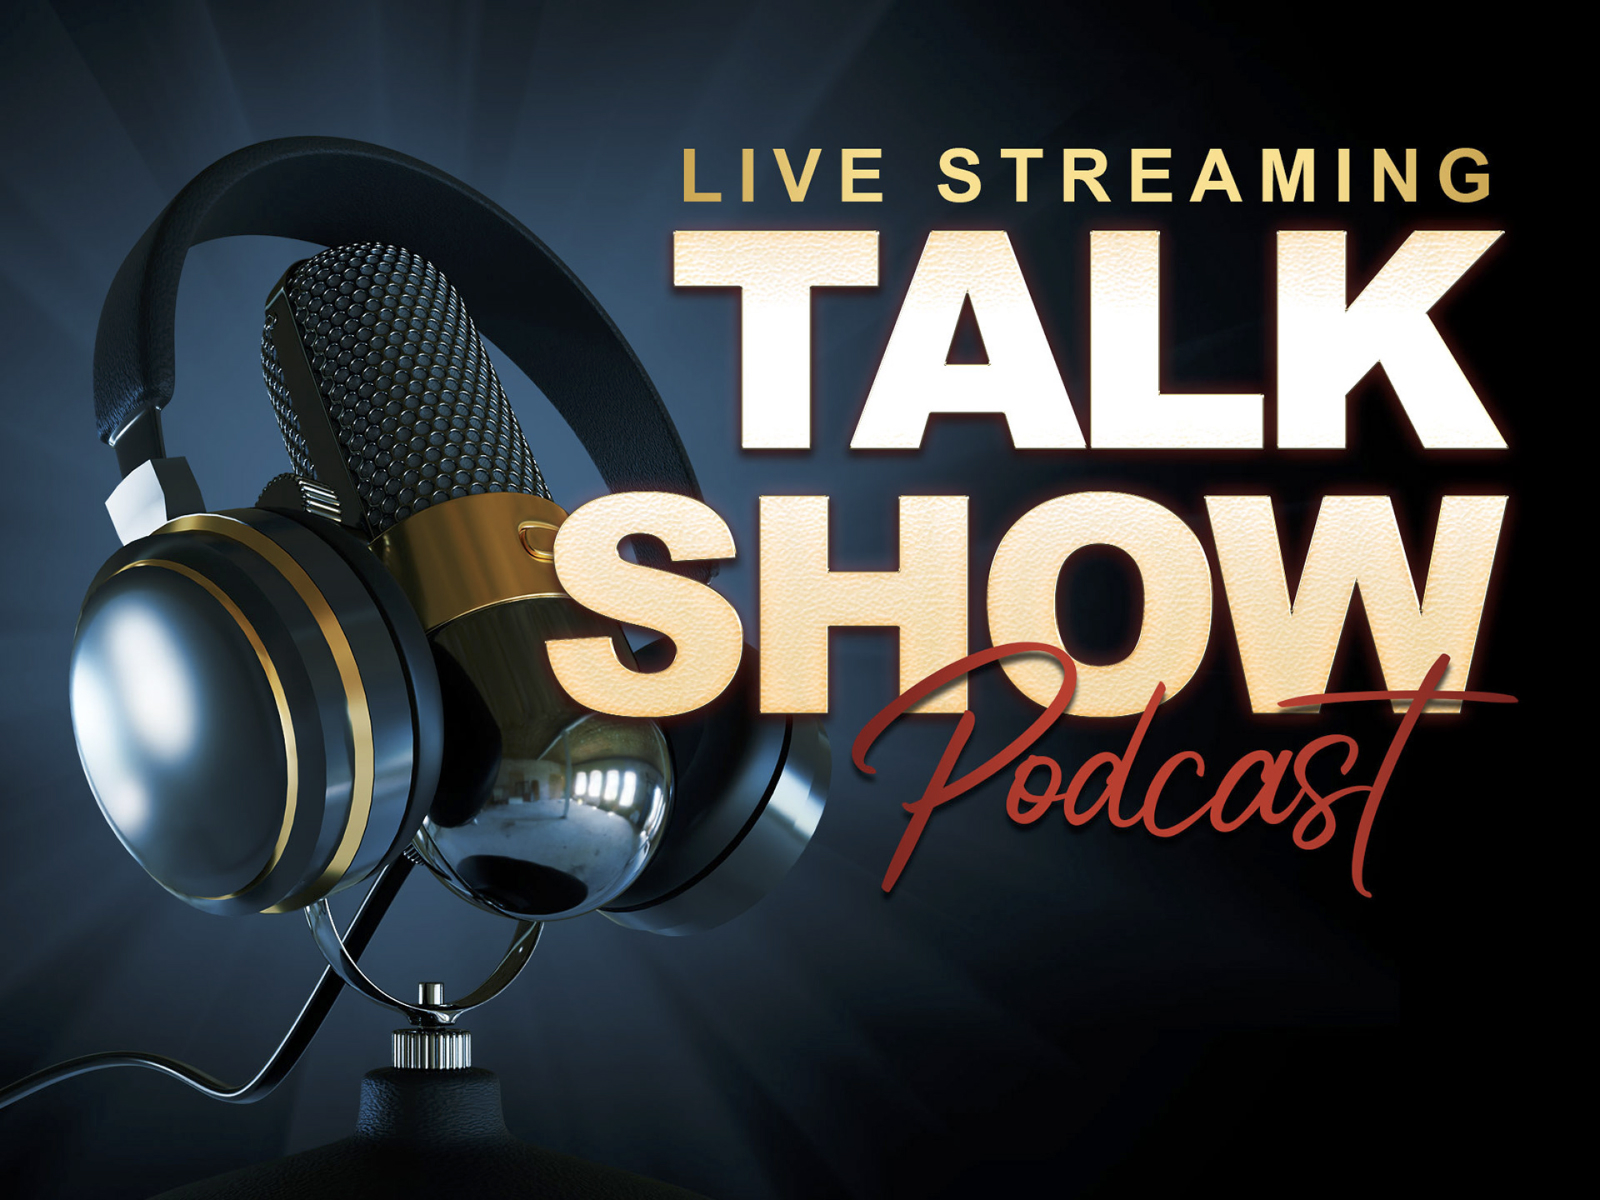 TALK SHOW PODCAST TEMPLATE cover image